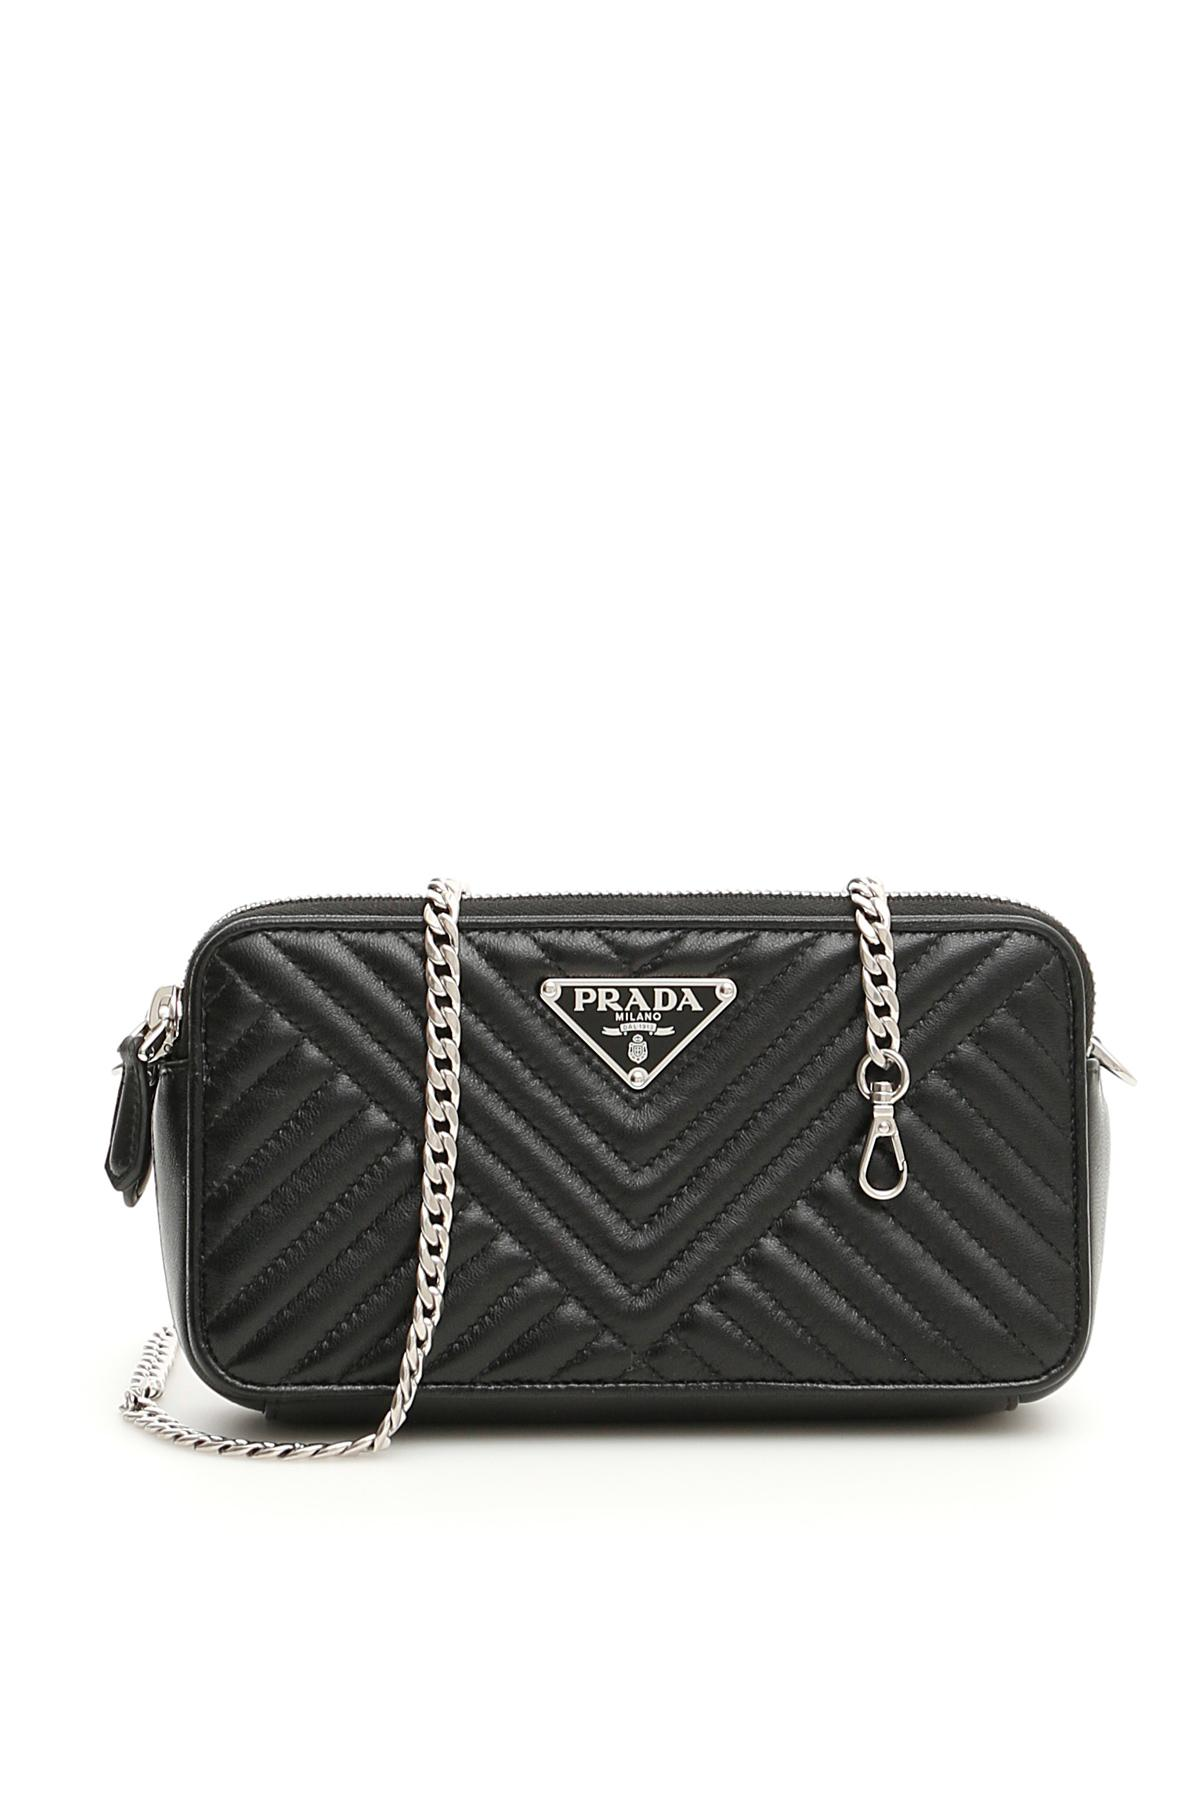 cb37292912d0 Prada Bags for Women Philippines - Prada Womens Bags for sale ...